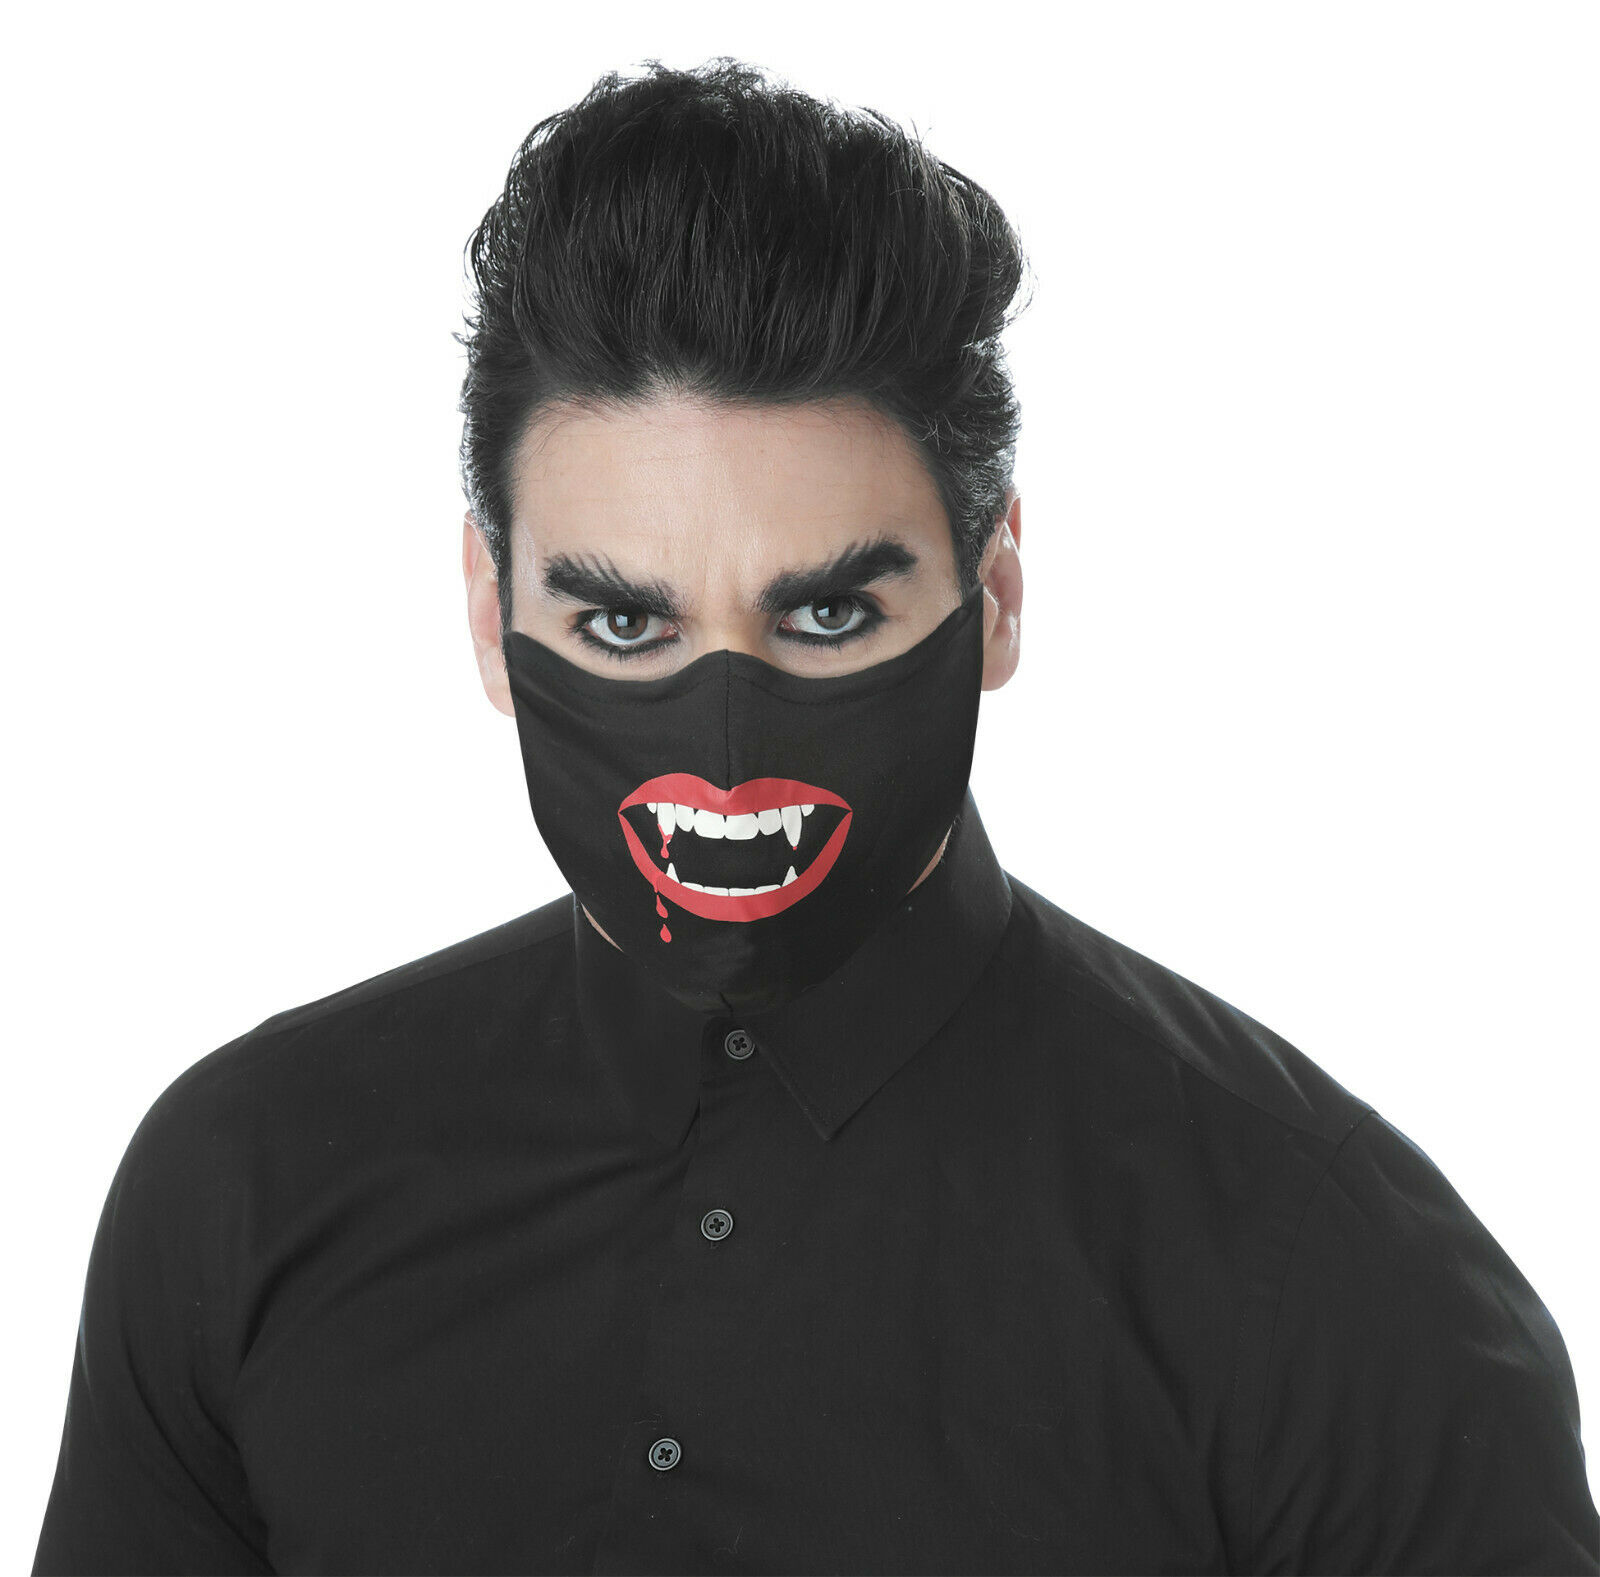 GLOW IN THE DARK VAMPIRE FACE COVERING FOR ADULTS